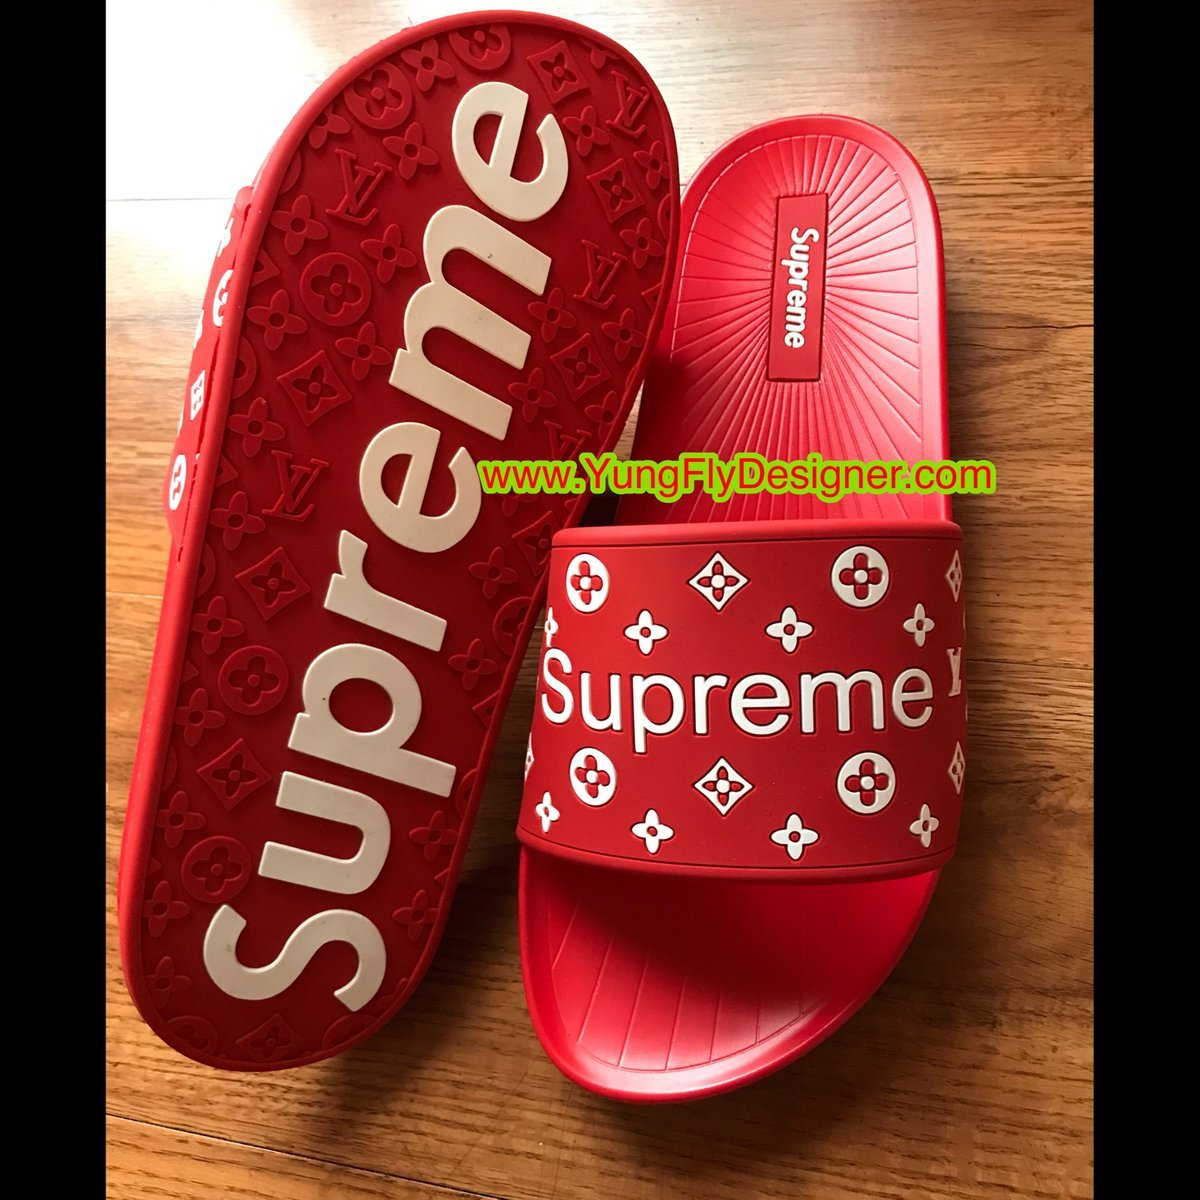 0215ddc5d0b3 Red Louis Vuitton Supreme Slippers -  115.00 – Young Fly Designer